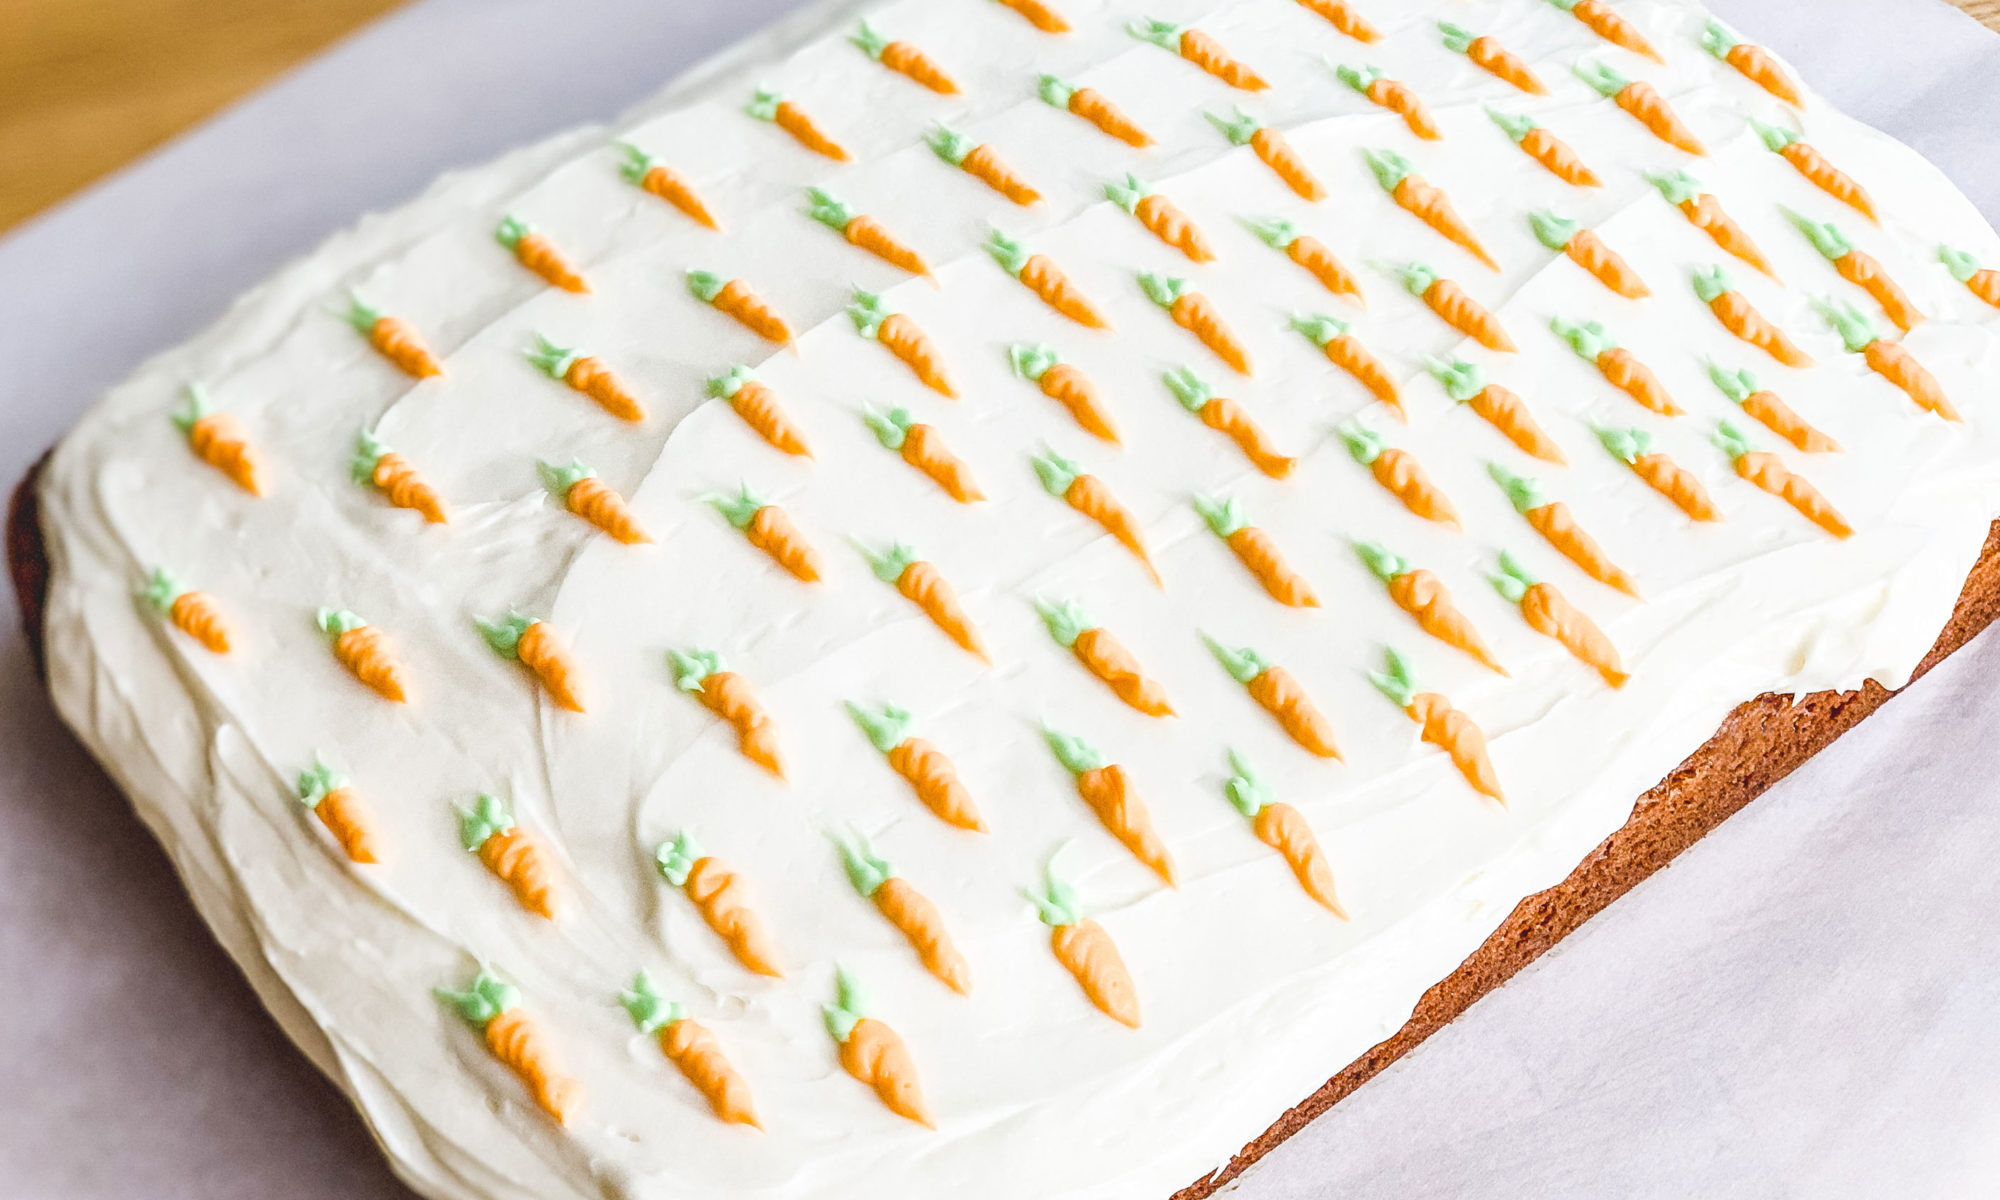 frosted carrot cake, with tiny carrots piped on top